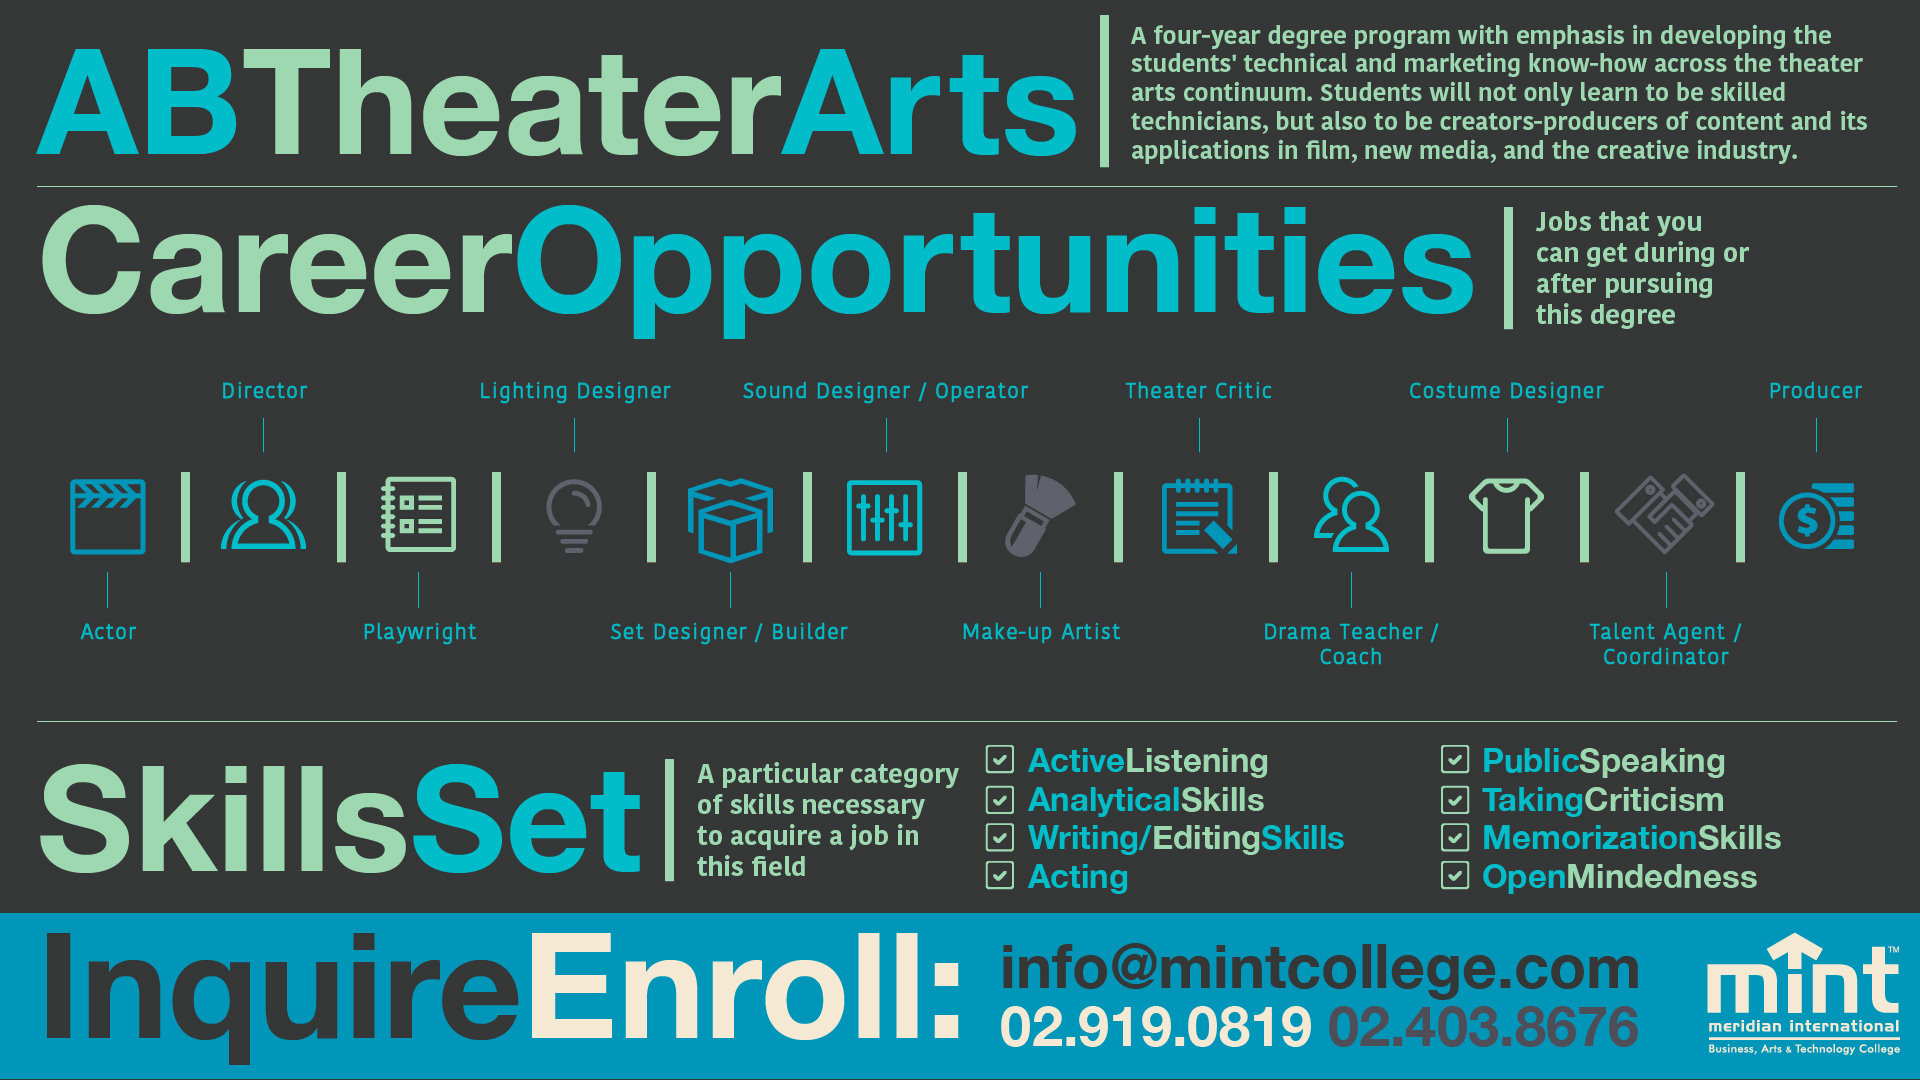 Thinking of a career in theater? Check out this infographic for career opportunities. For more information on MINT's program offerings, go to www.mintcollege.com, Programs section.